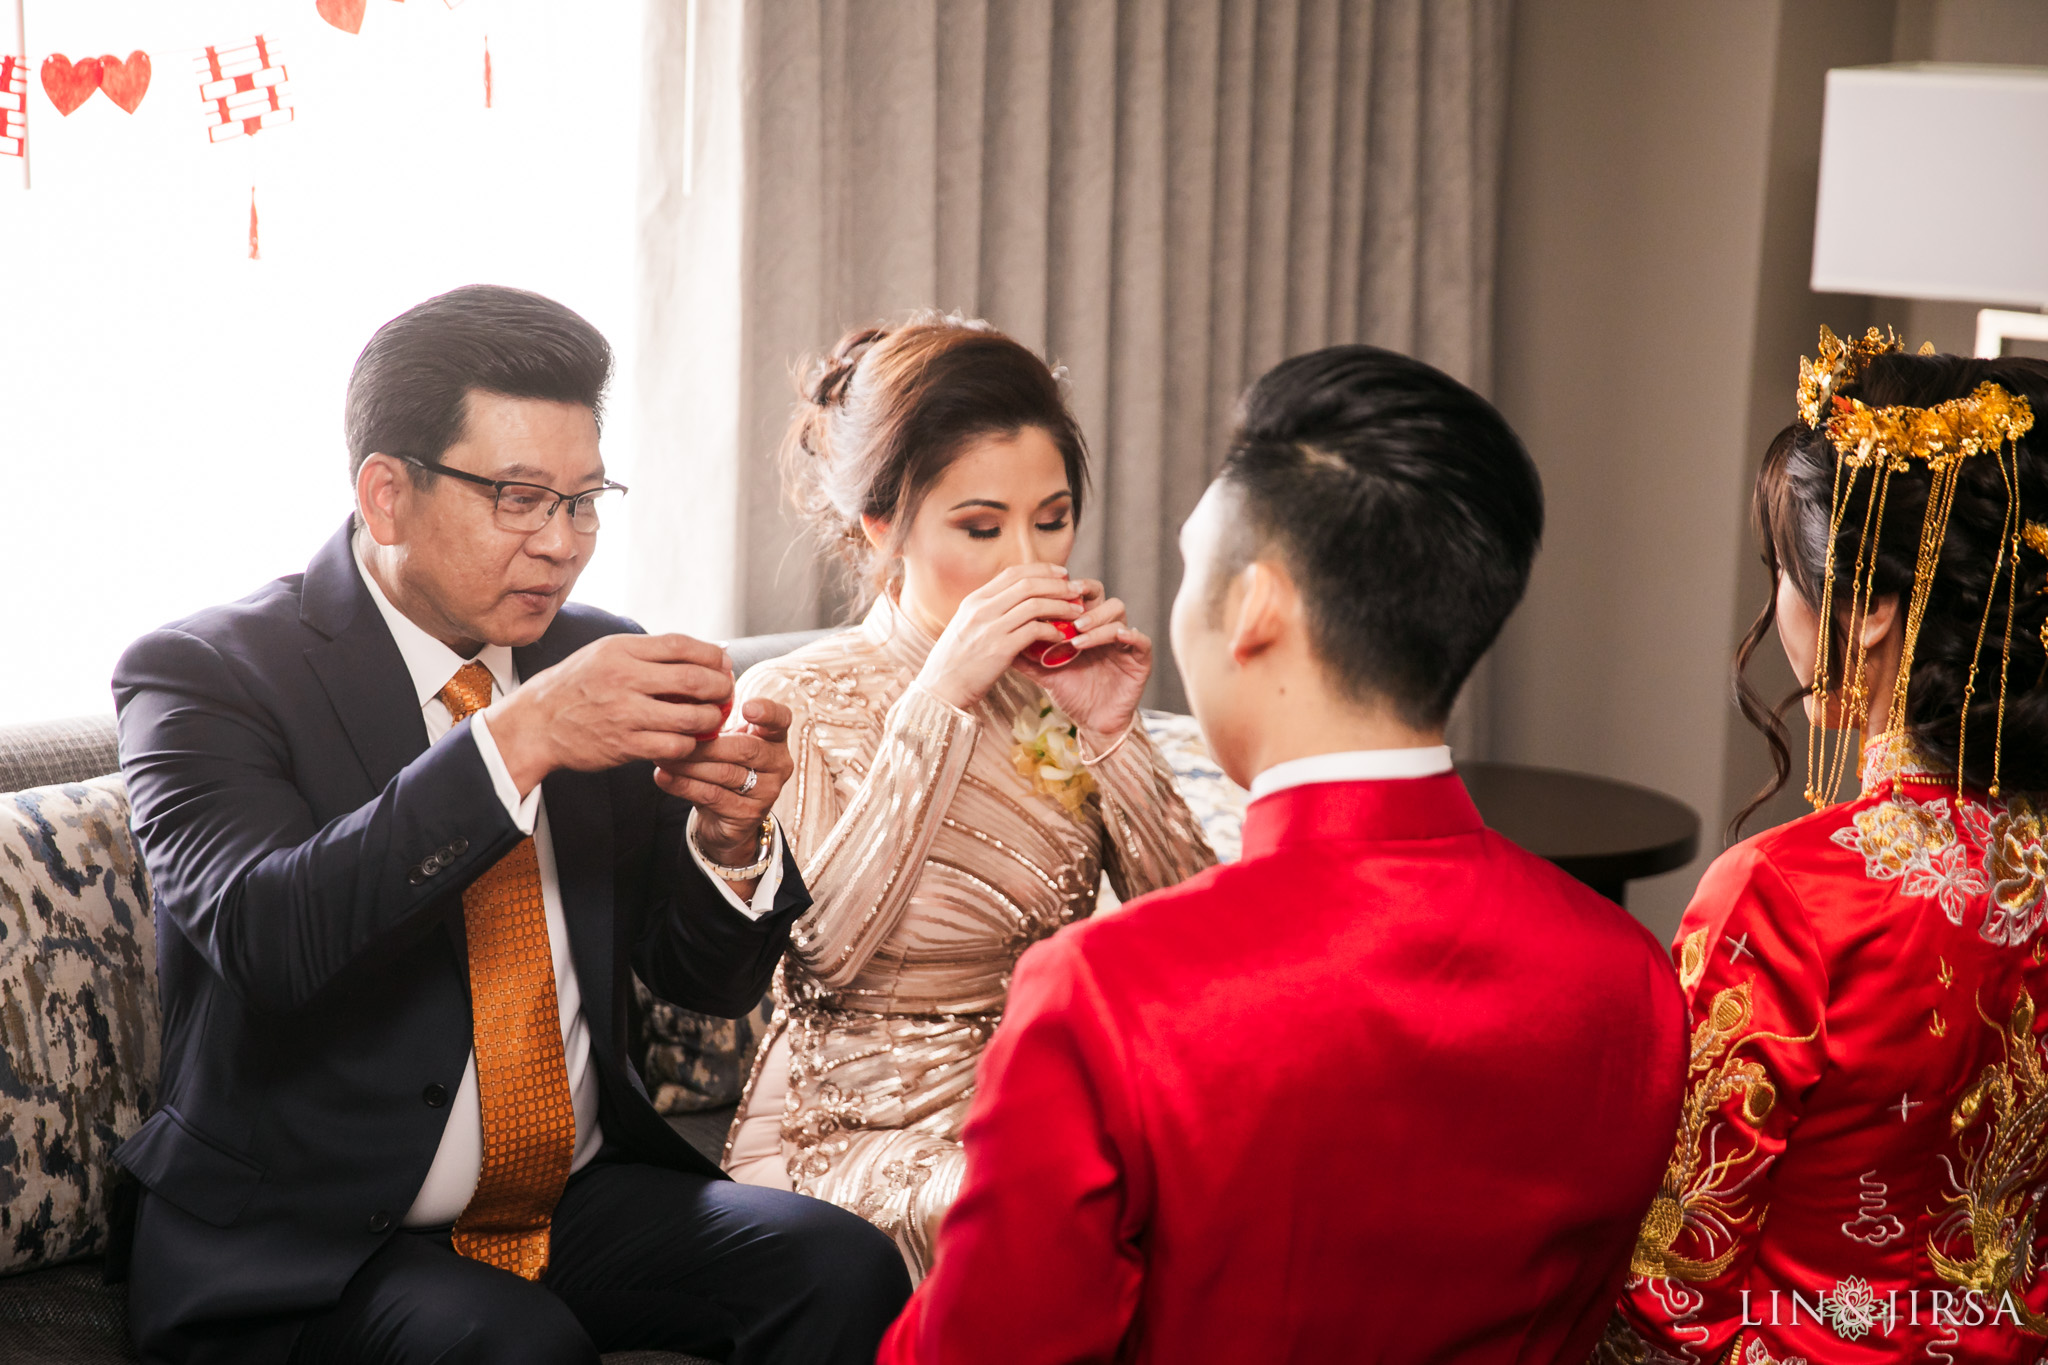 007 the villa at lifetime events westminster chinese tea ceremony photography